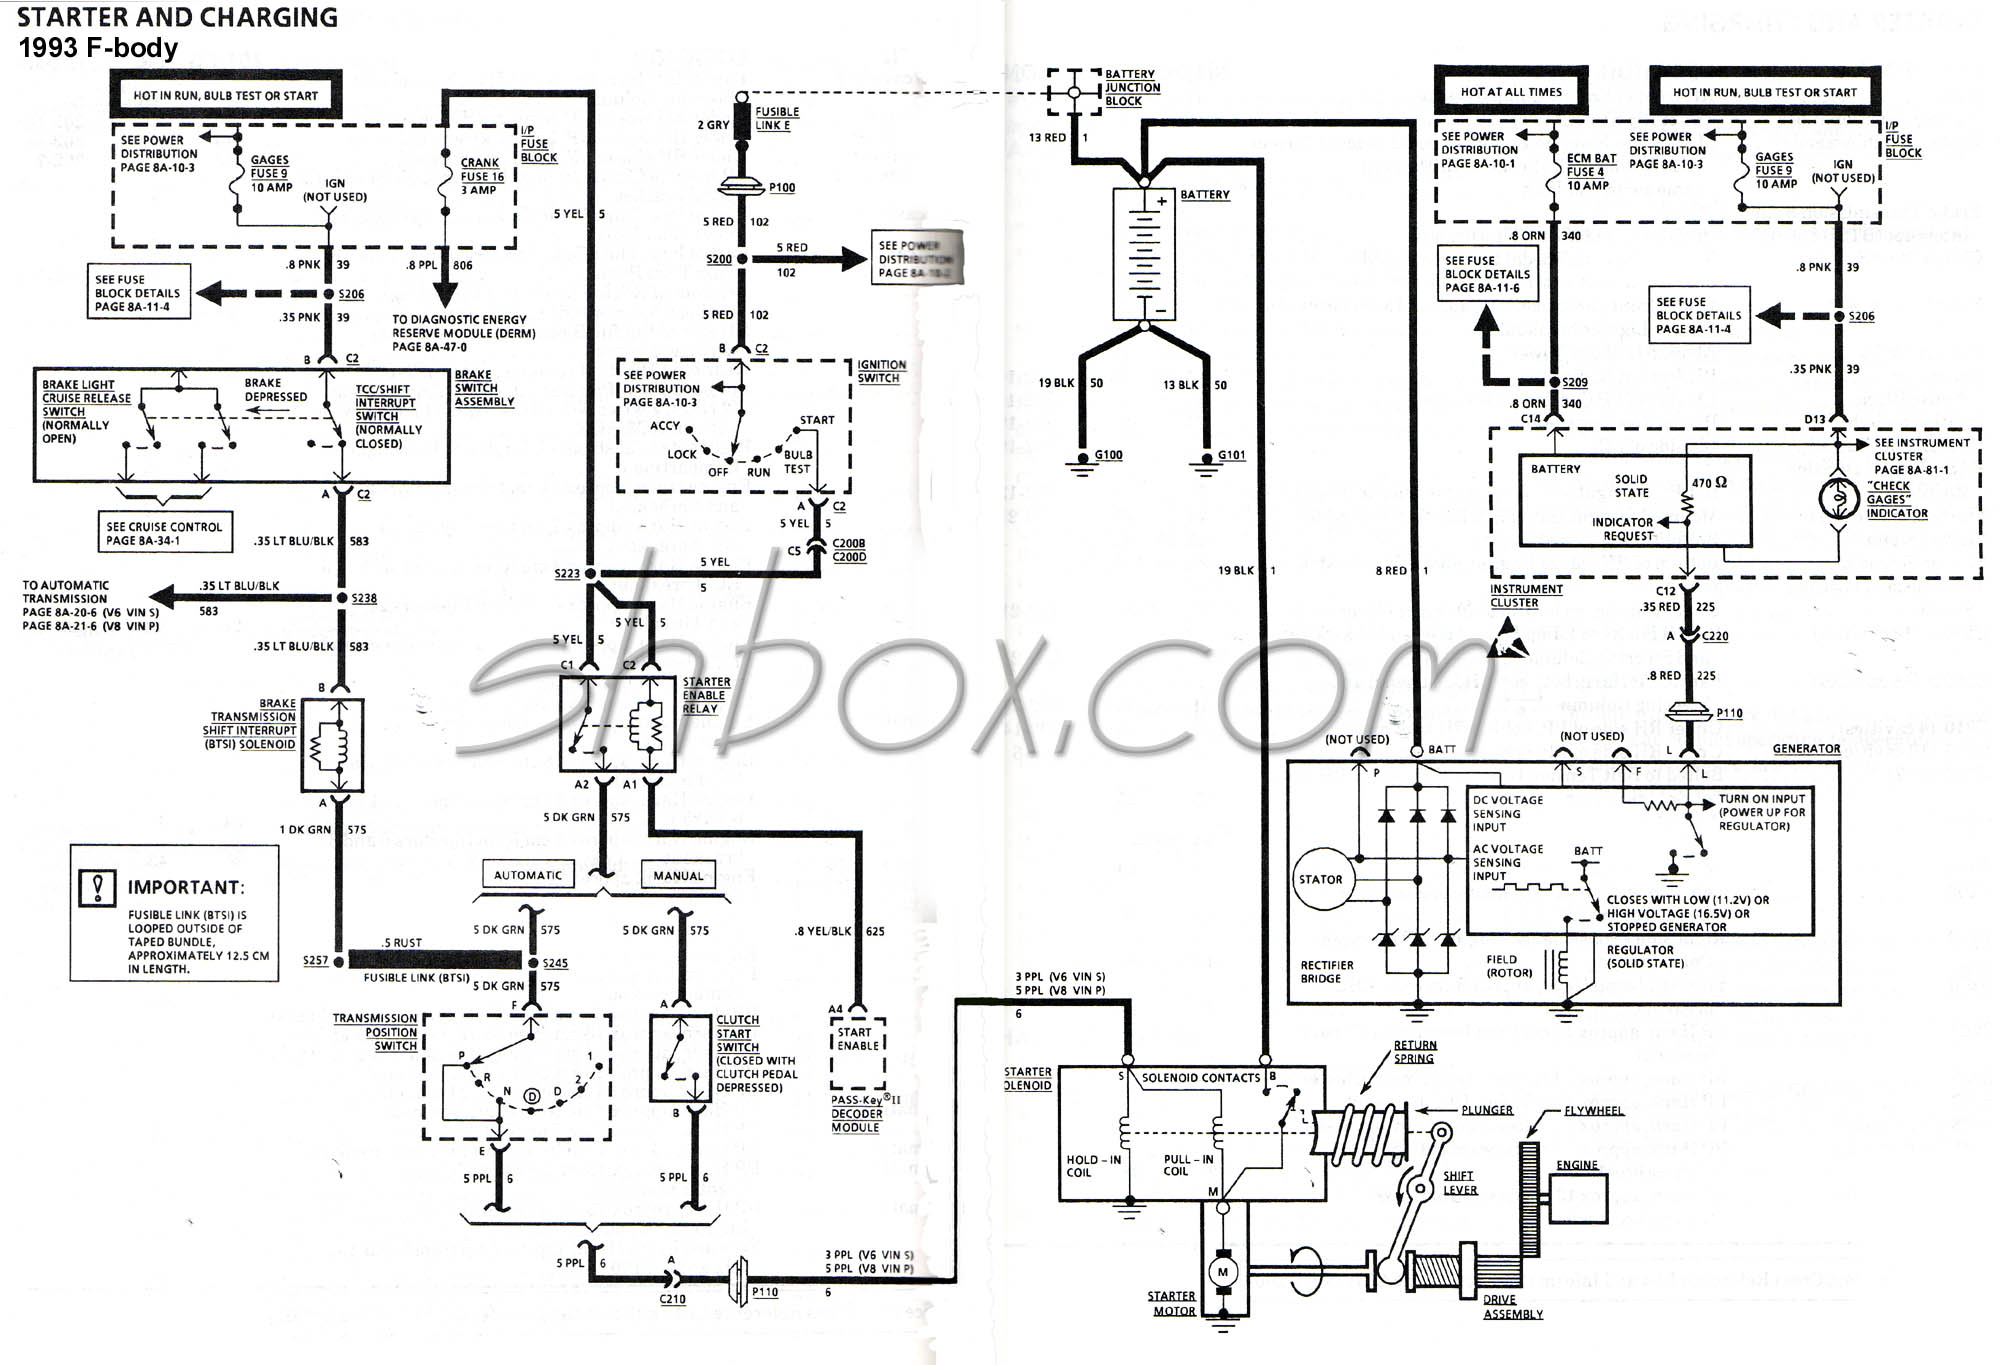 1995 lt1 wiring harness diagram schematic